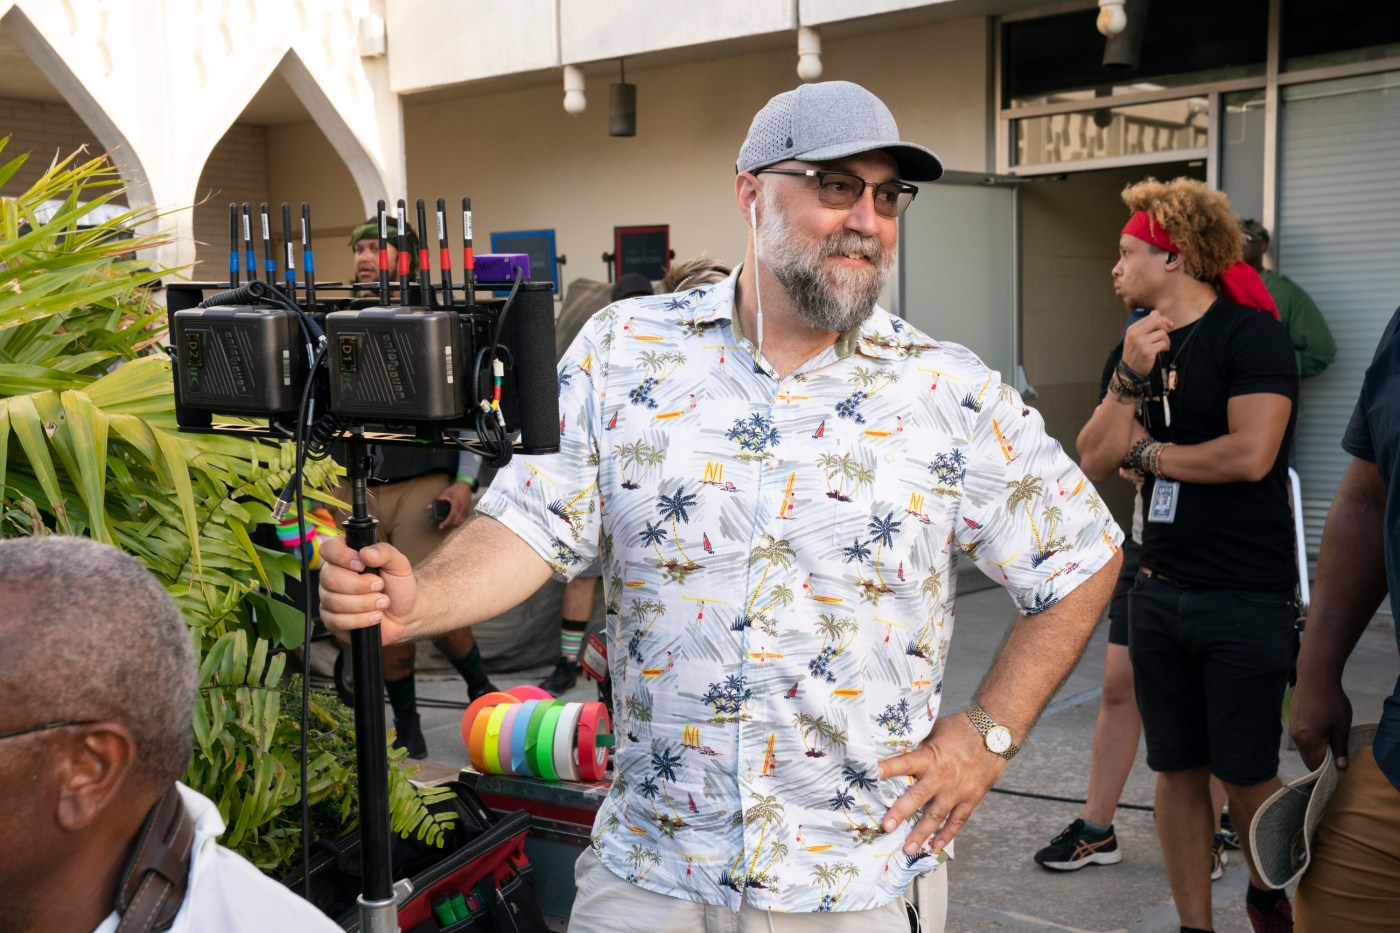 Coming 2 America' director Craig Brewer on Vallejo, Eddie Murphy and being a fan on the set | Datebook